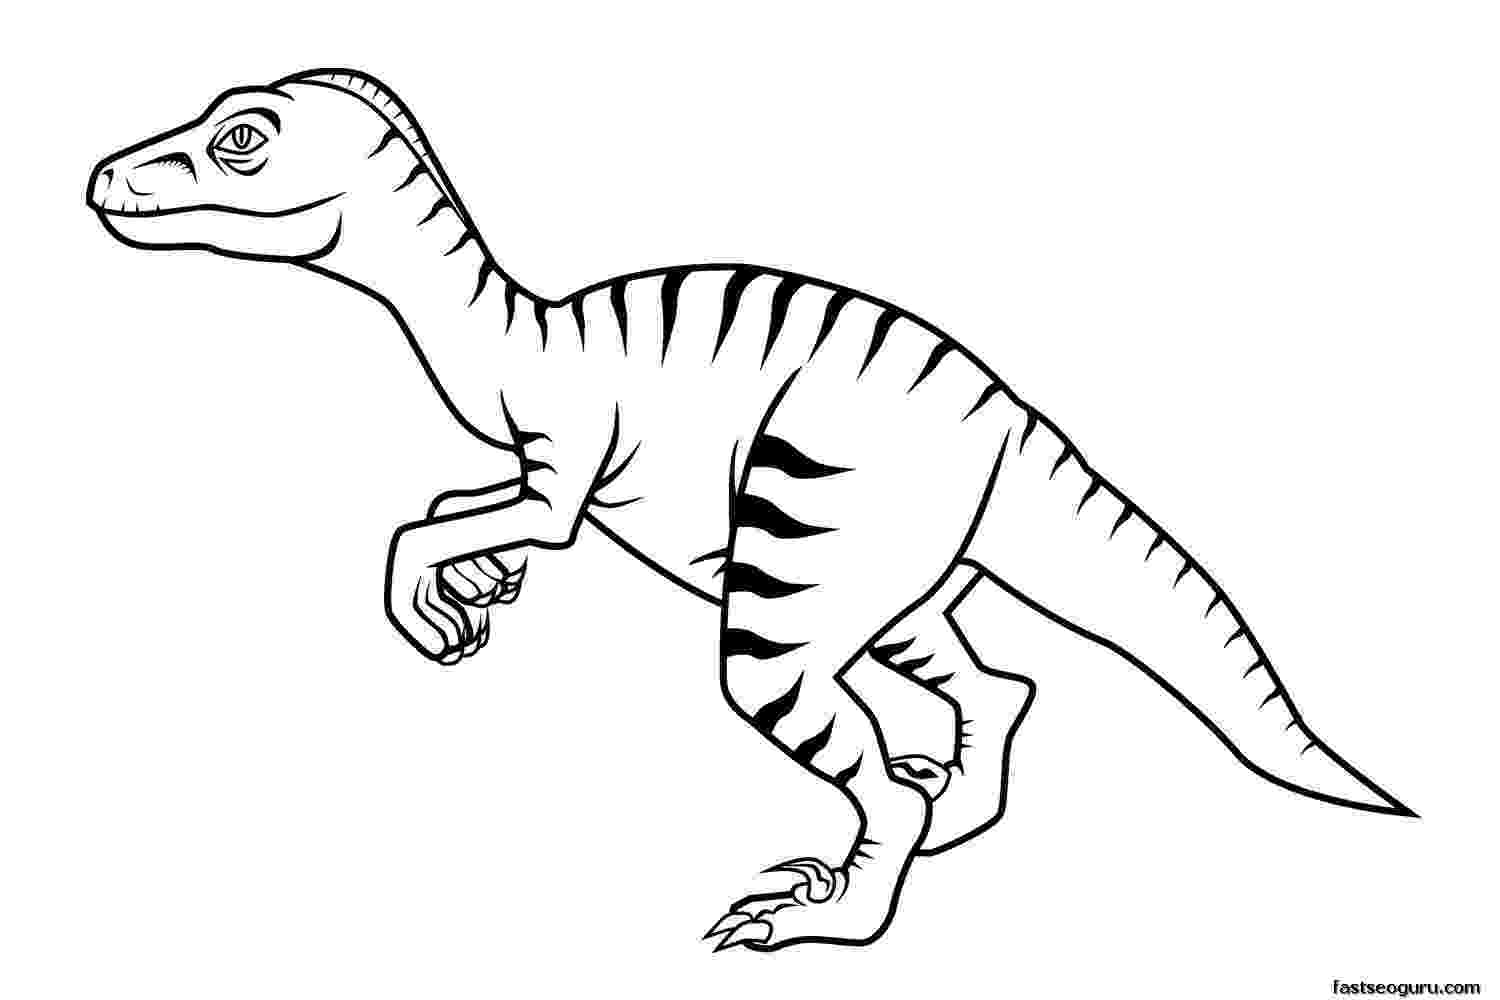 dinosaur coloring pages for toddlers free printable dinosaur coloring pages for kids pages dinosaur coloring toddlers for